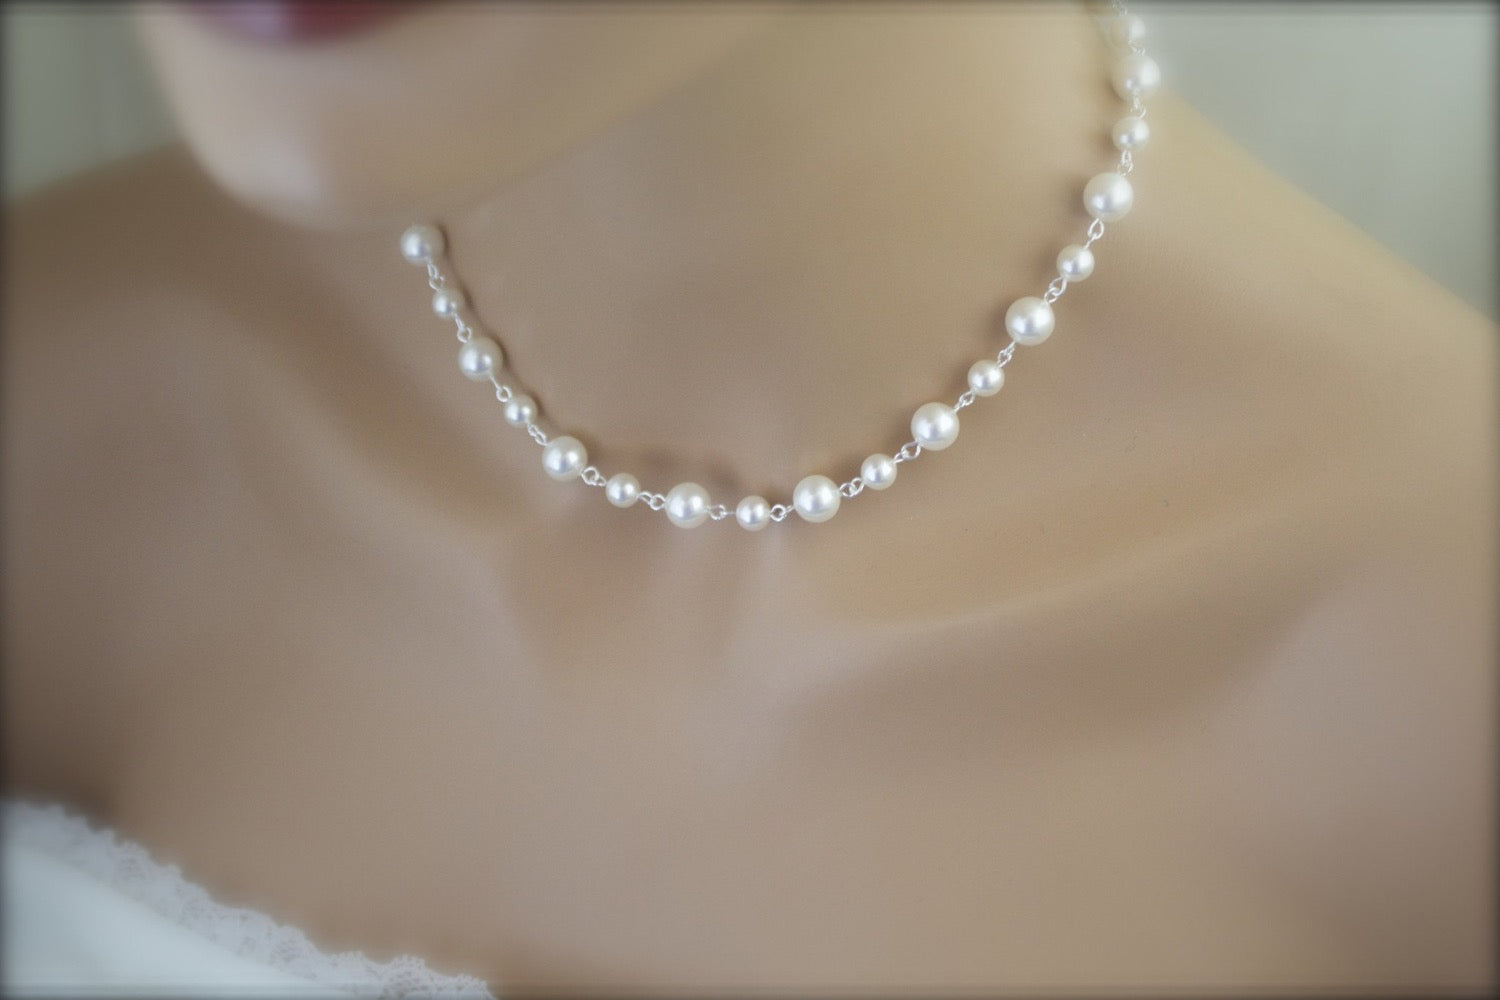 Wedding pearl necklace bridal jewelry Canada shop online - Clairesbridal - 5